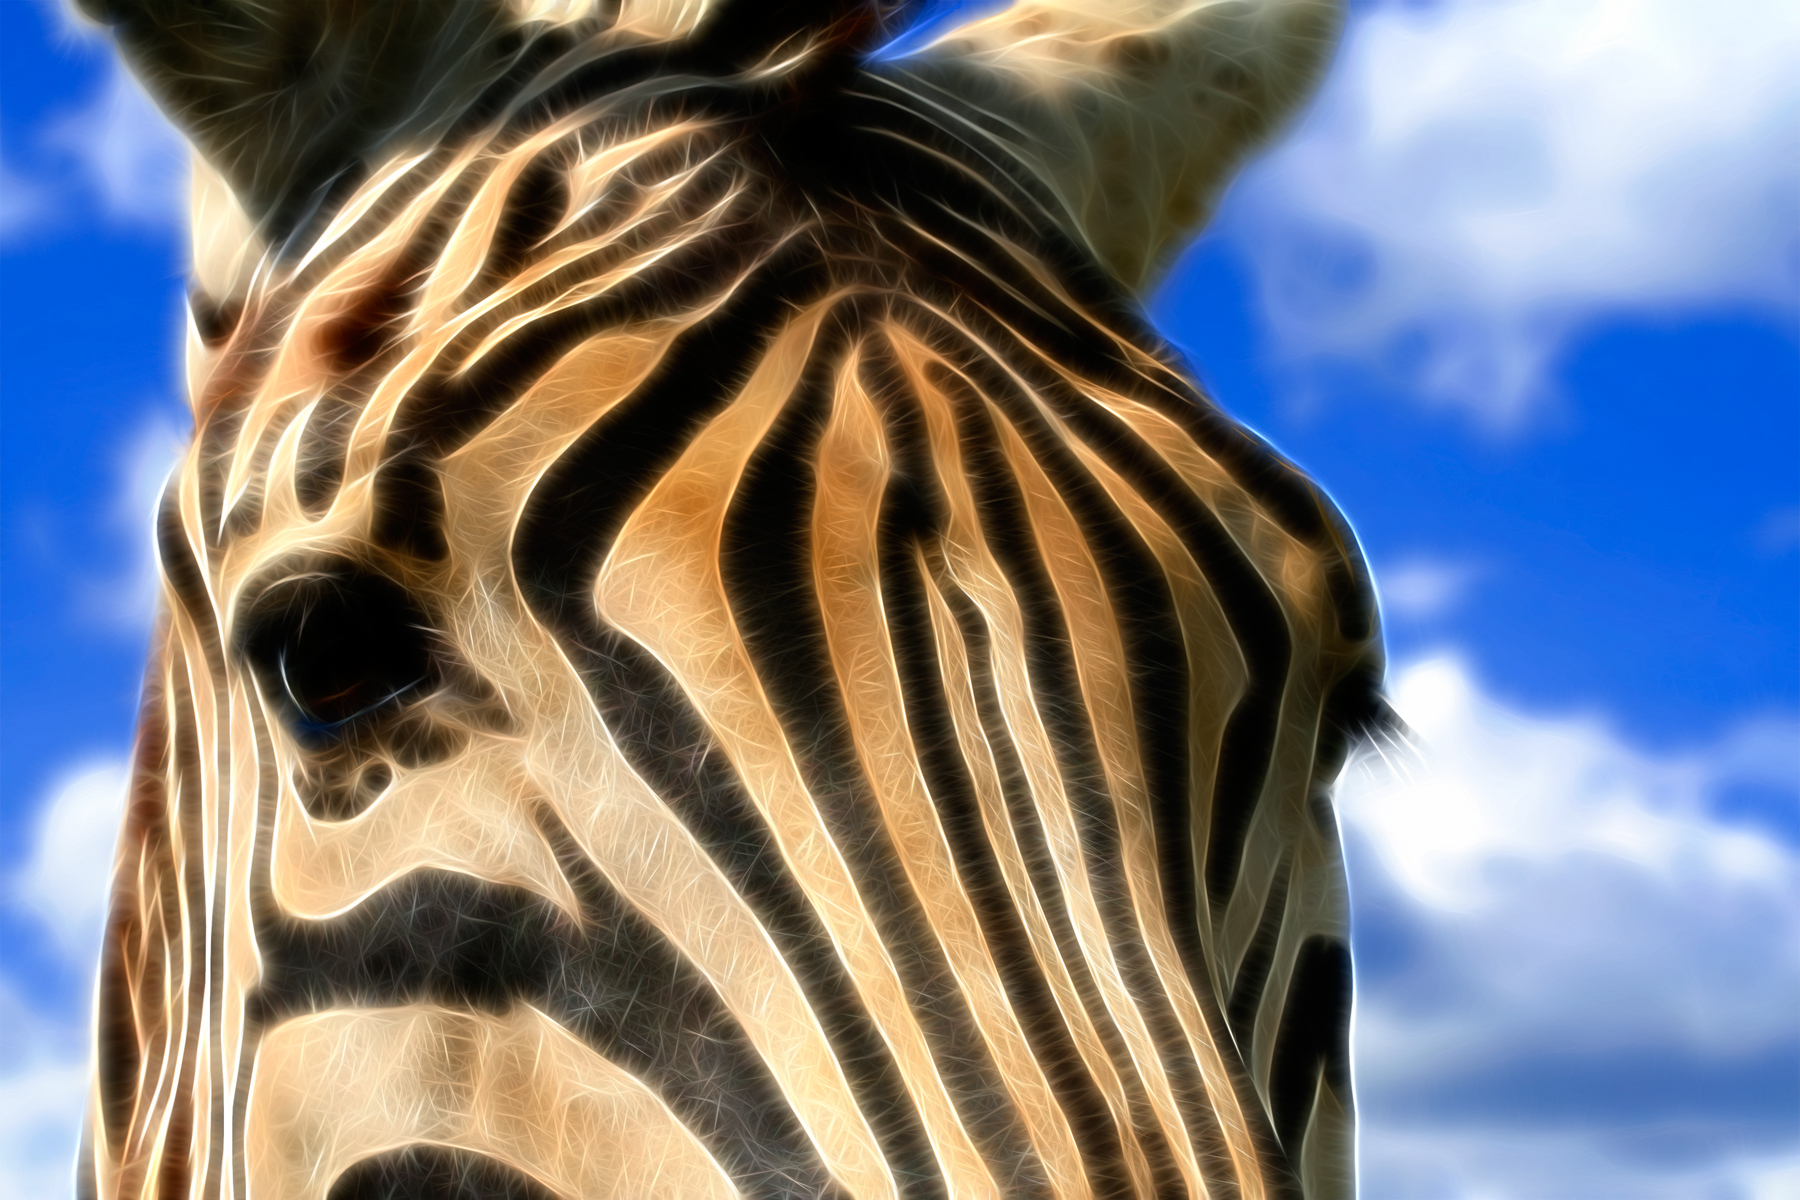 Zebra profile abstract photo